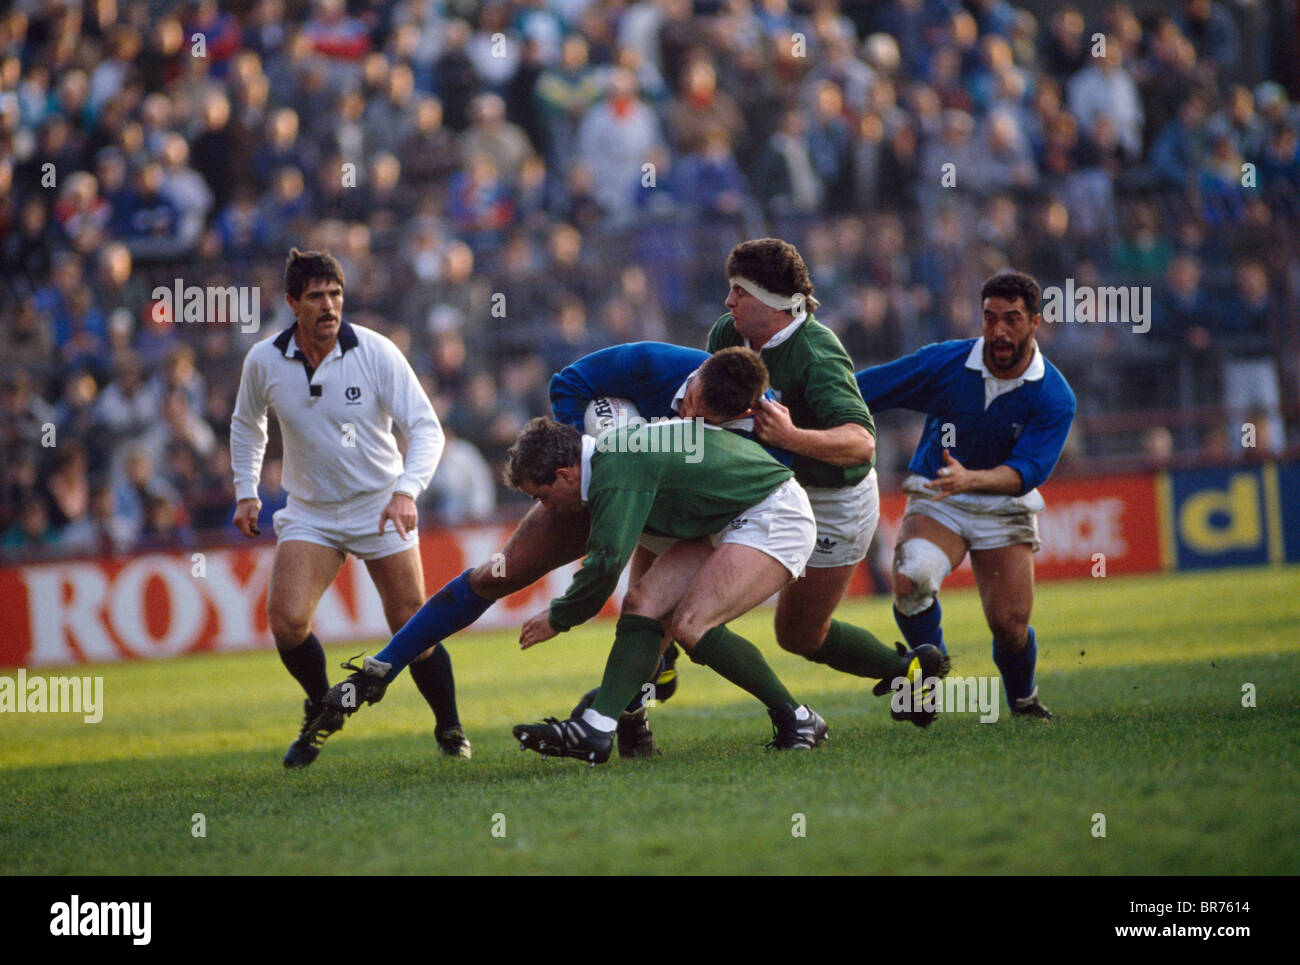 Rugby, - Stock Image